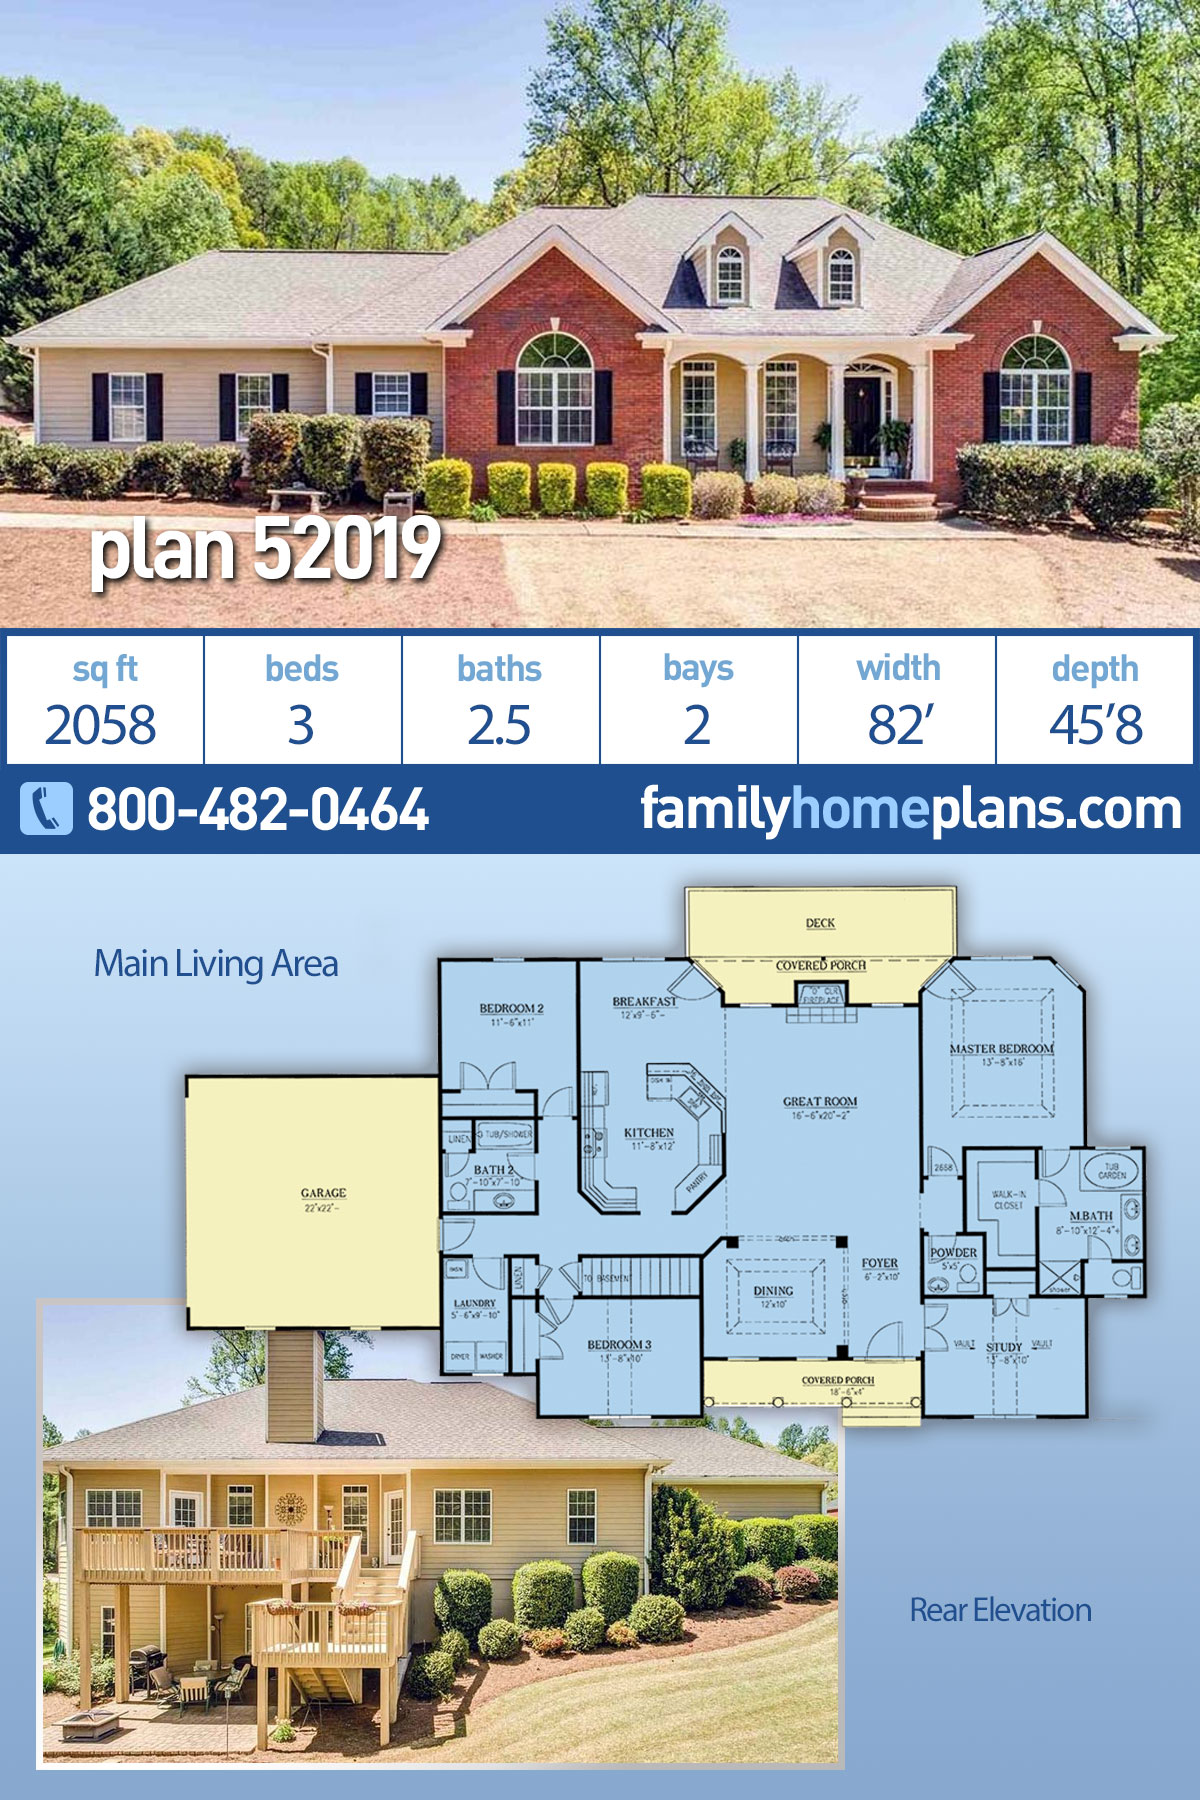 Country, Traditional House Plan 52019 with 3 Beds, 3 Baths, 2 Car Garage